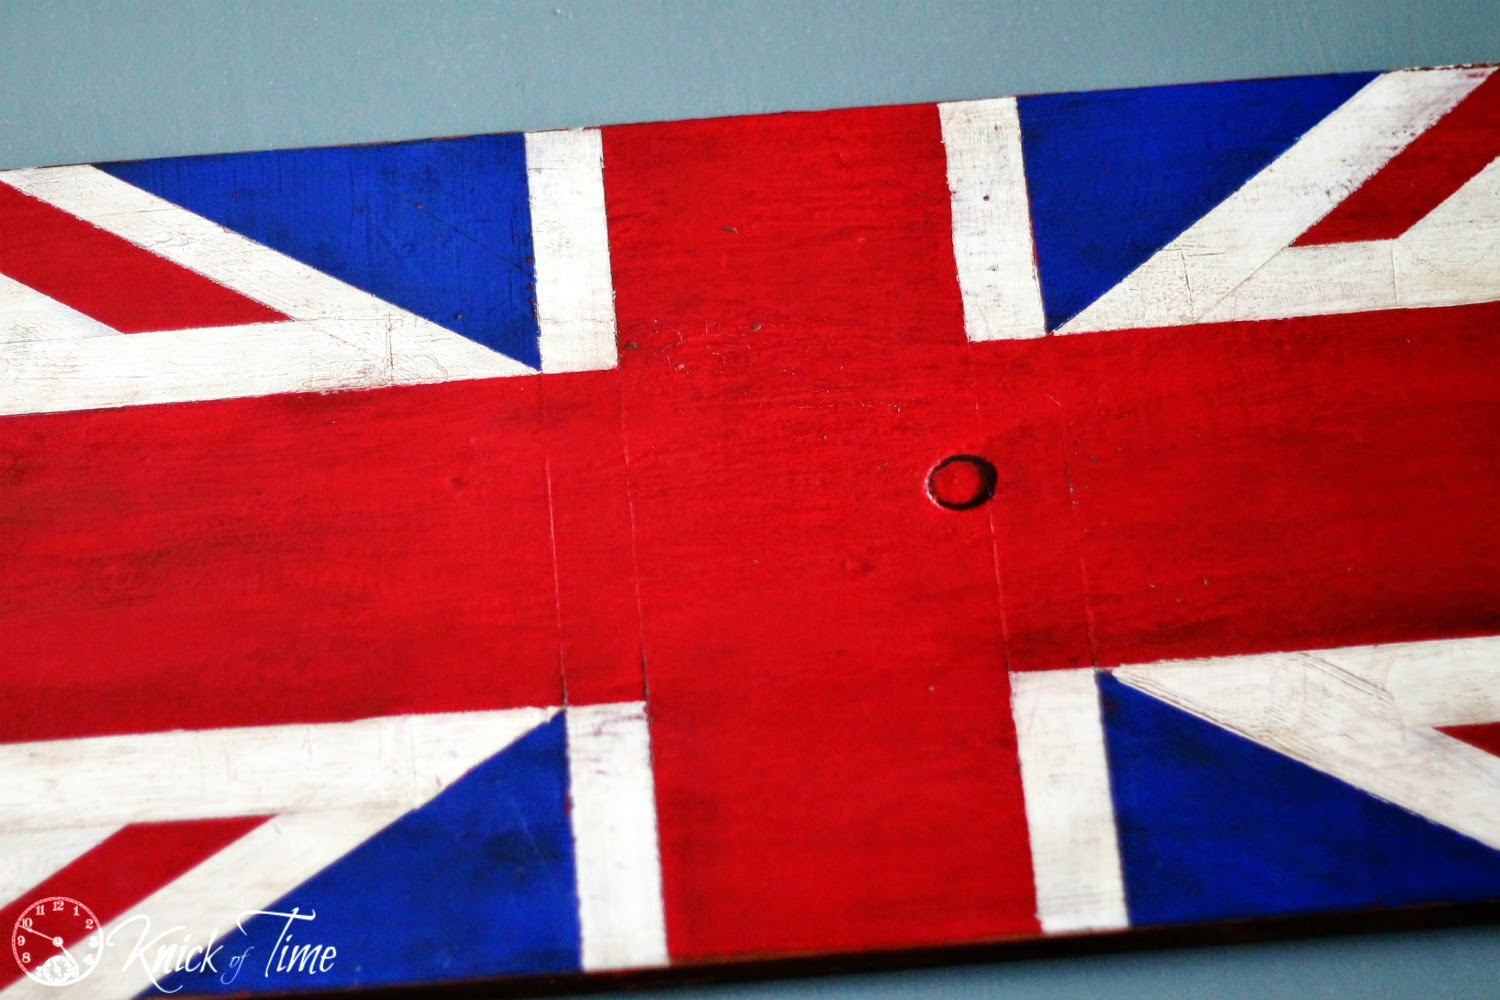 Union Jack Sign via Knick of Time